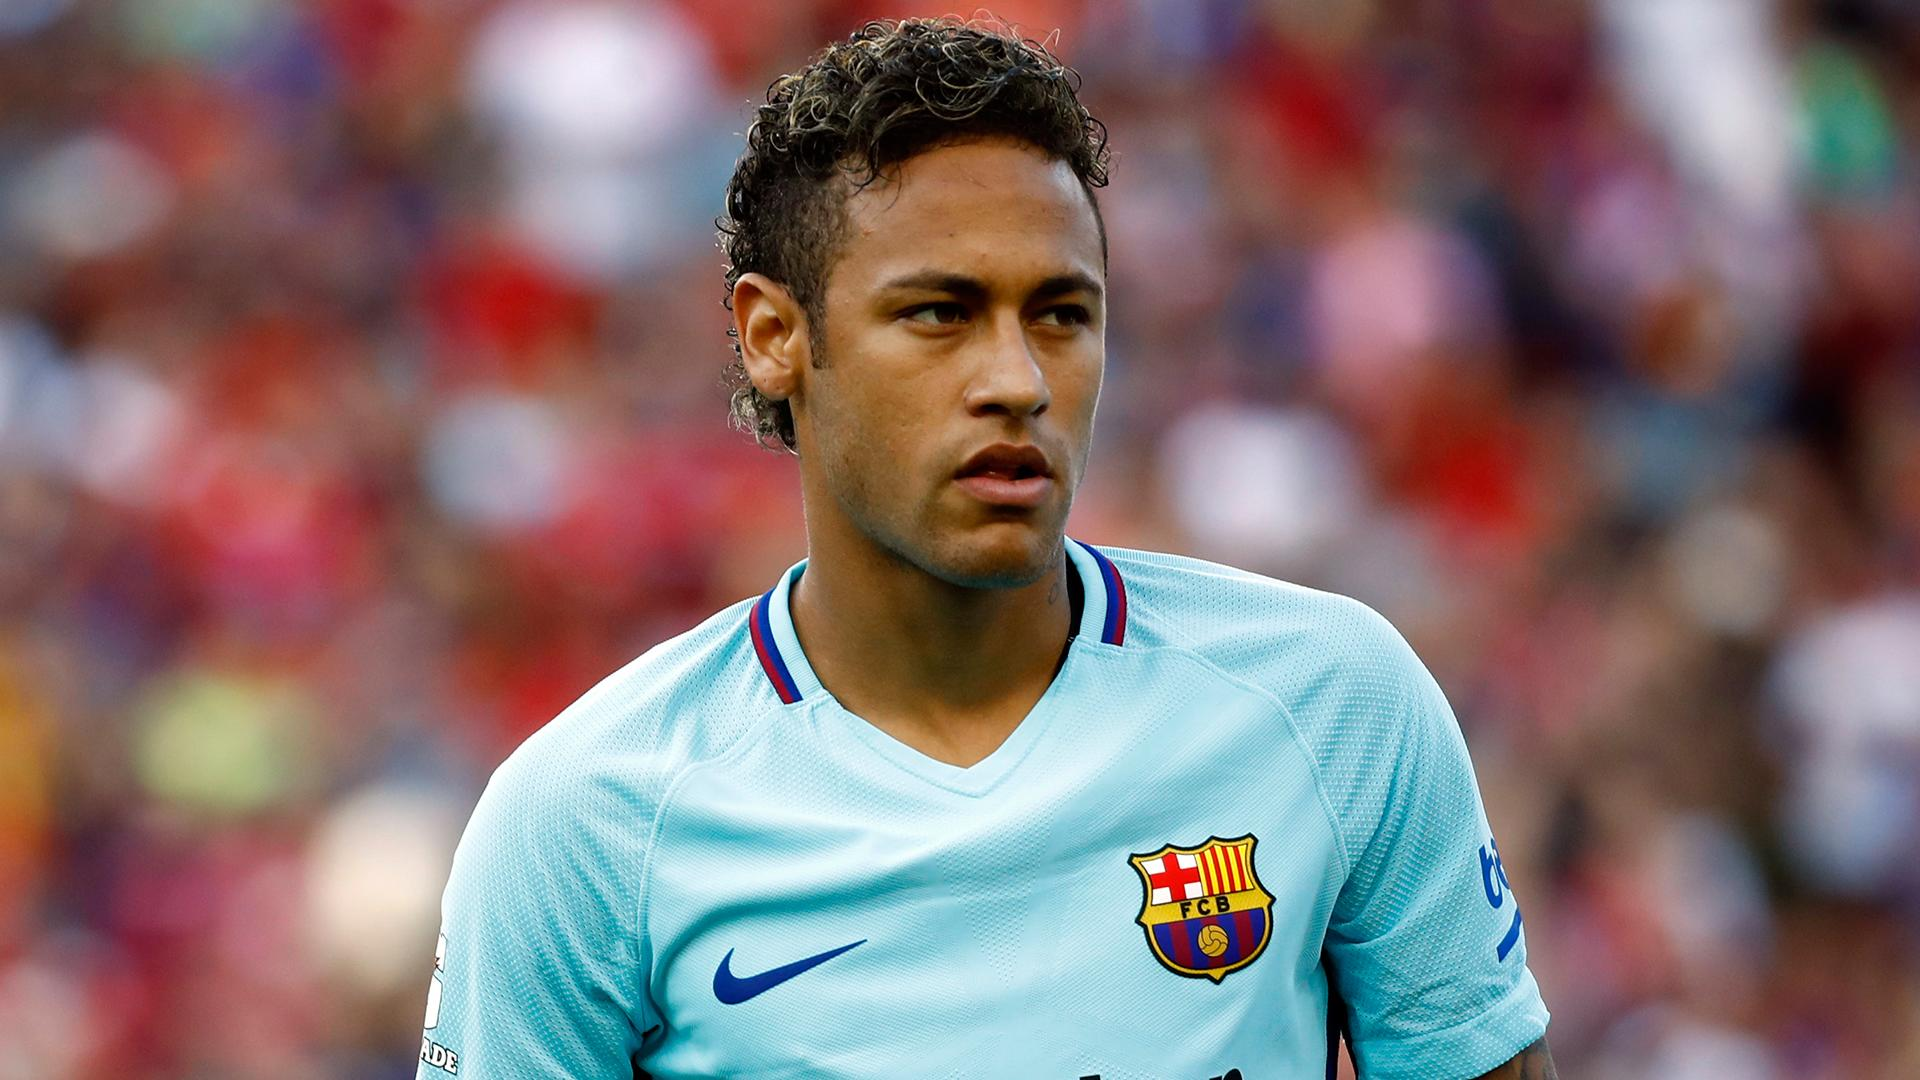 Who could replace Neymar at Barcelona Here are 20 potential